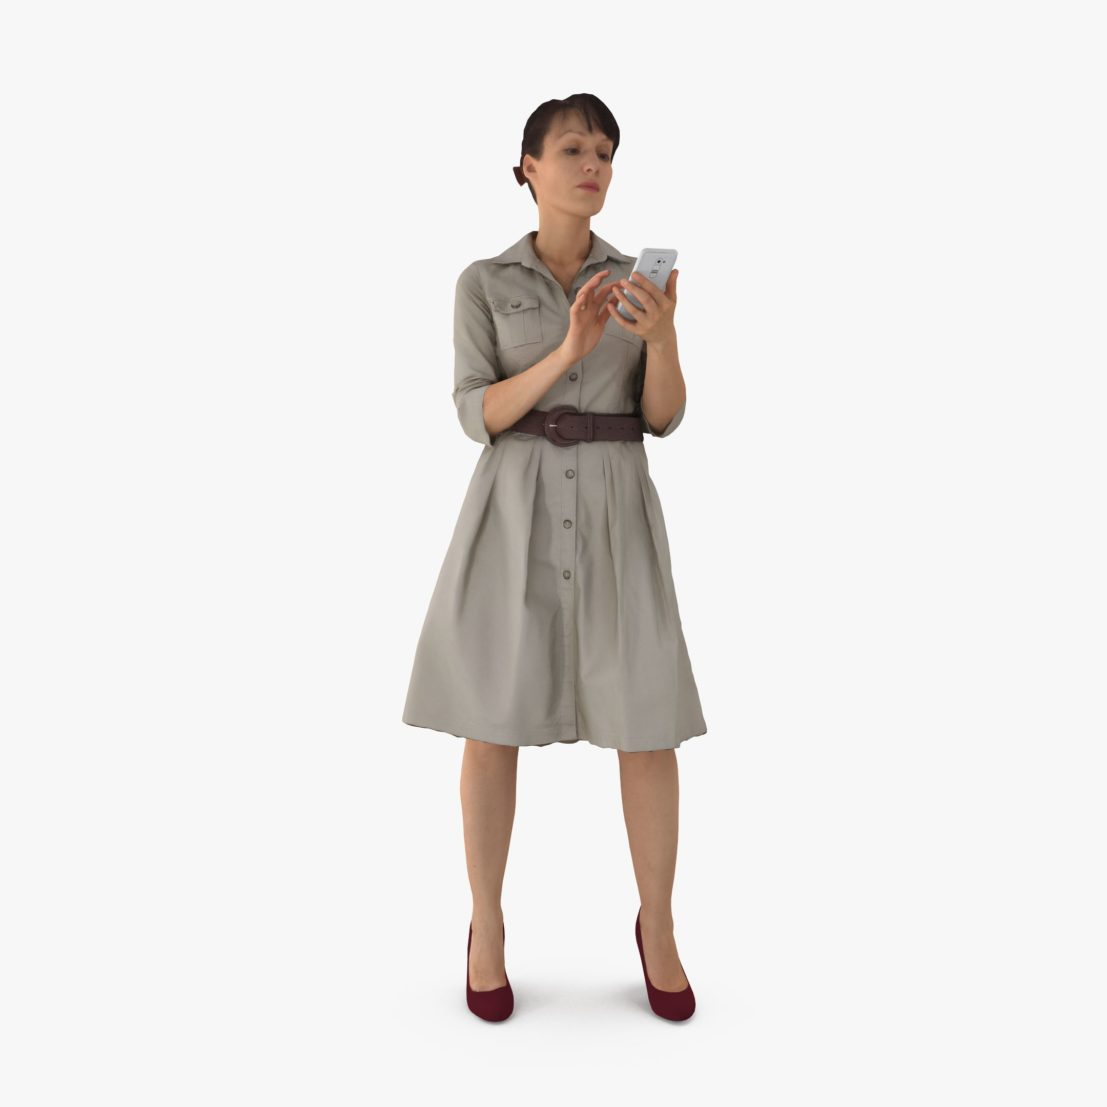 Business Lady in Dress 3D Model | 3DTree Scanning Studio